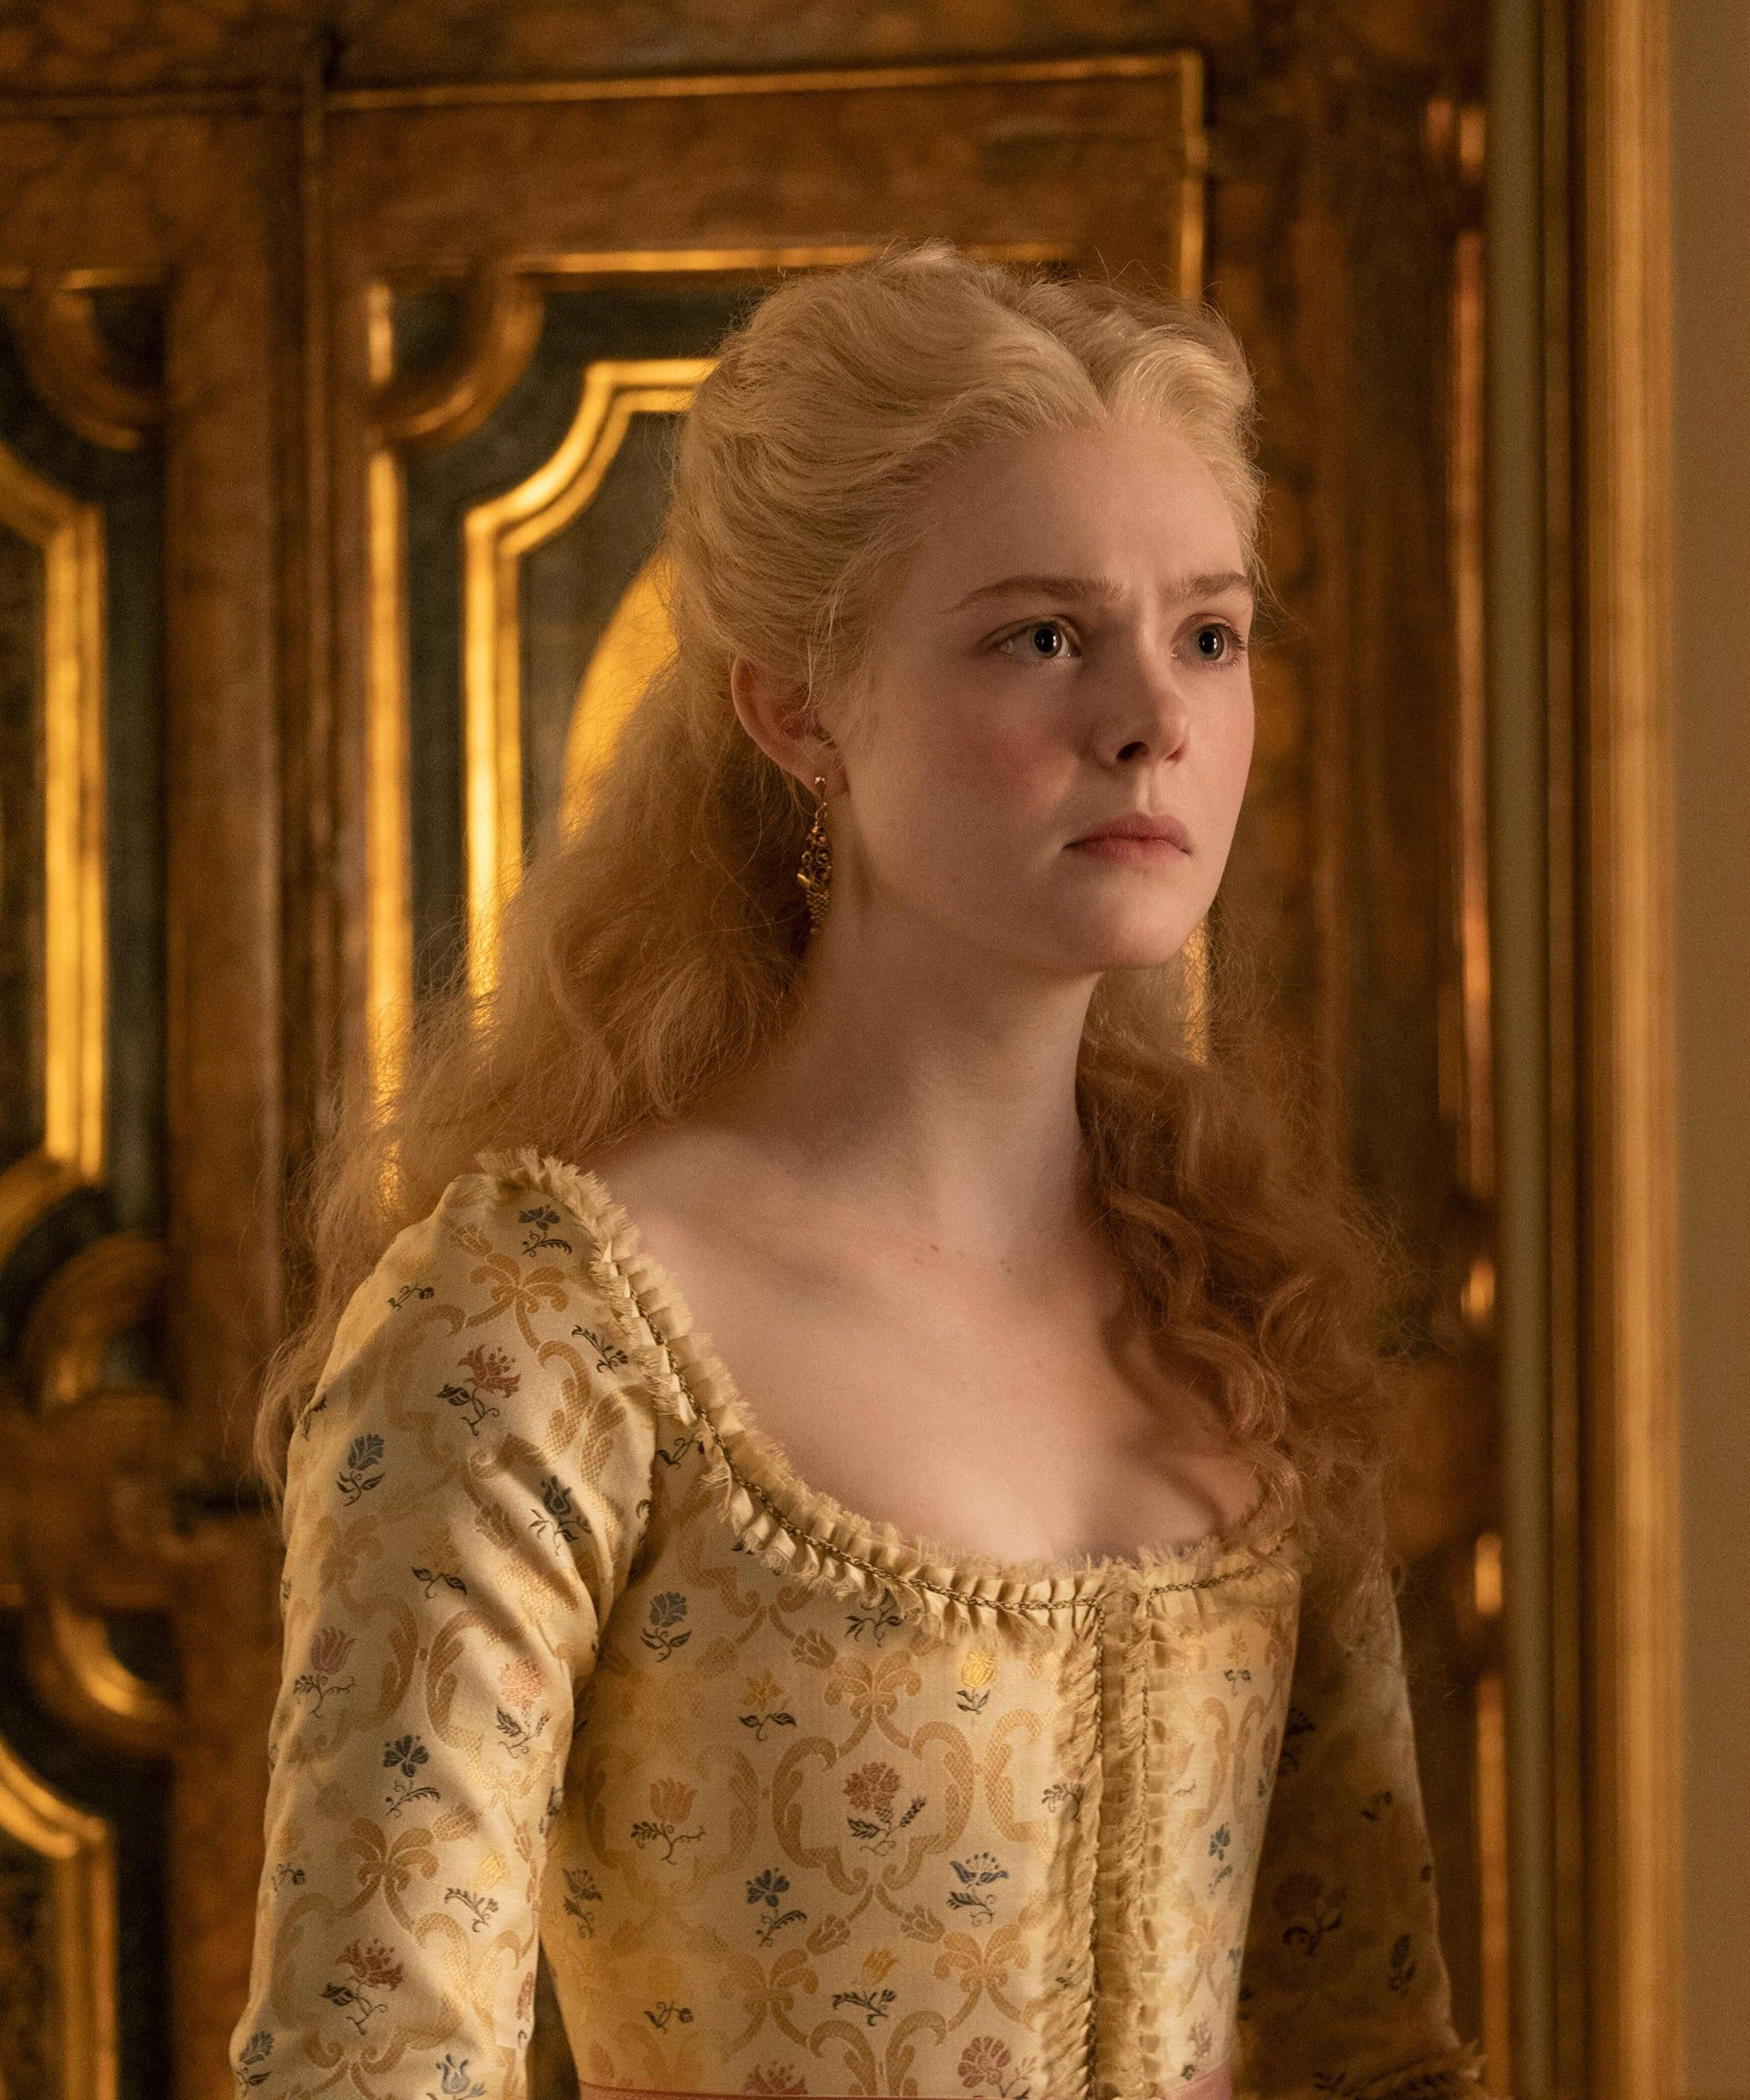 Who S Real Who S Fictional In The Great In 2020 Catherine The Great Elle Fanning Greatful